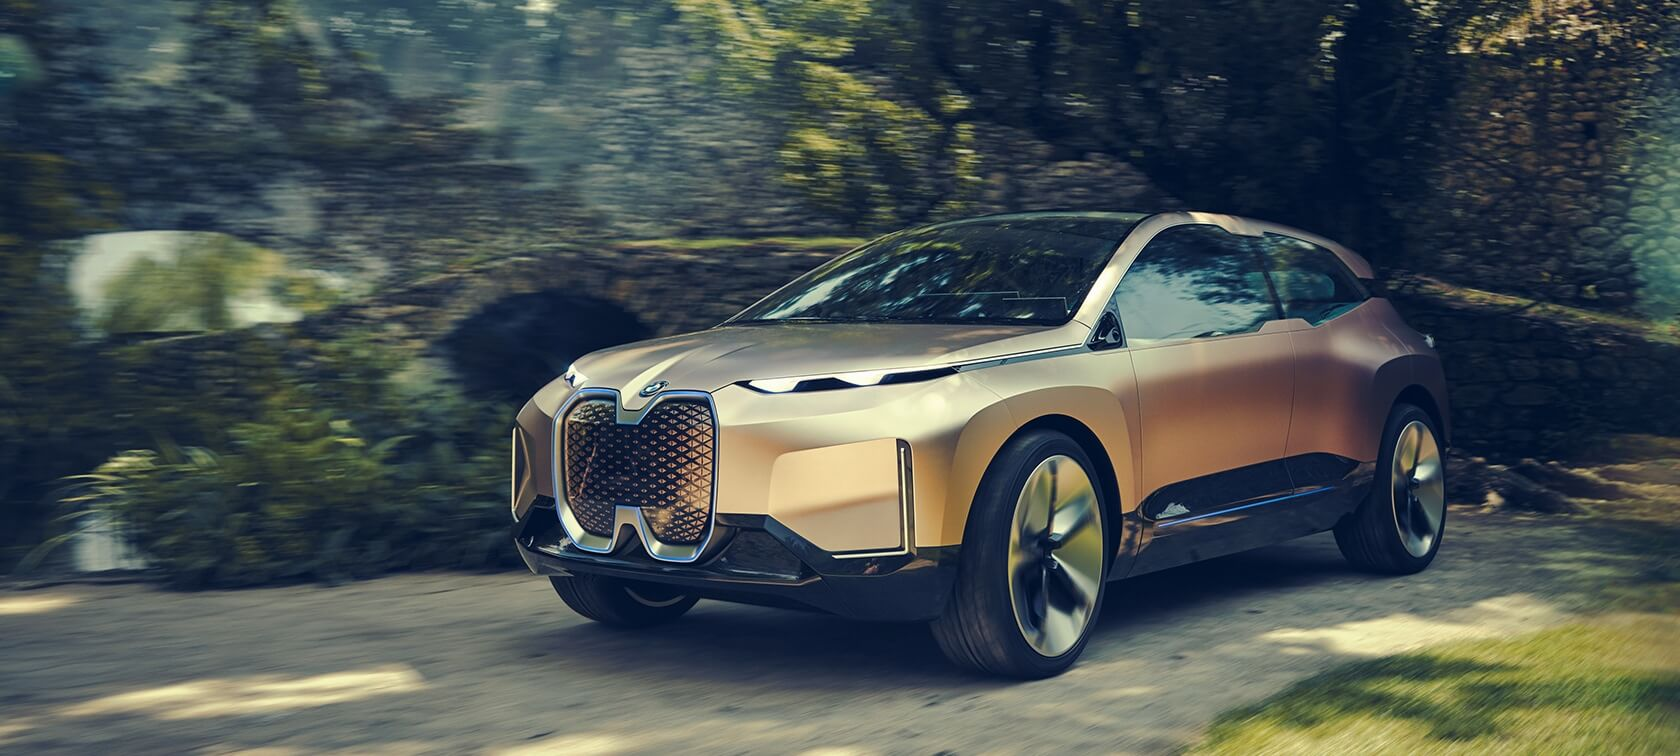 BMW Vision iNext electric luxury crossover